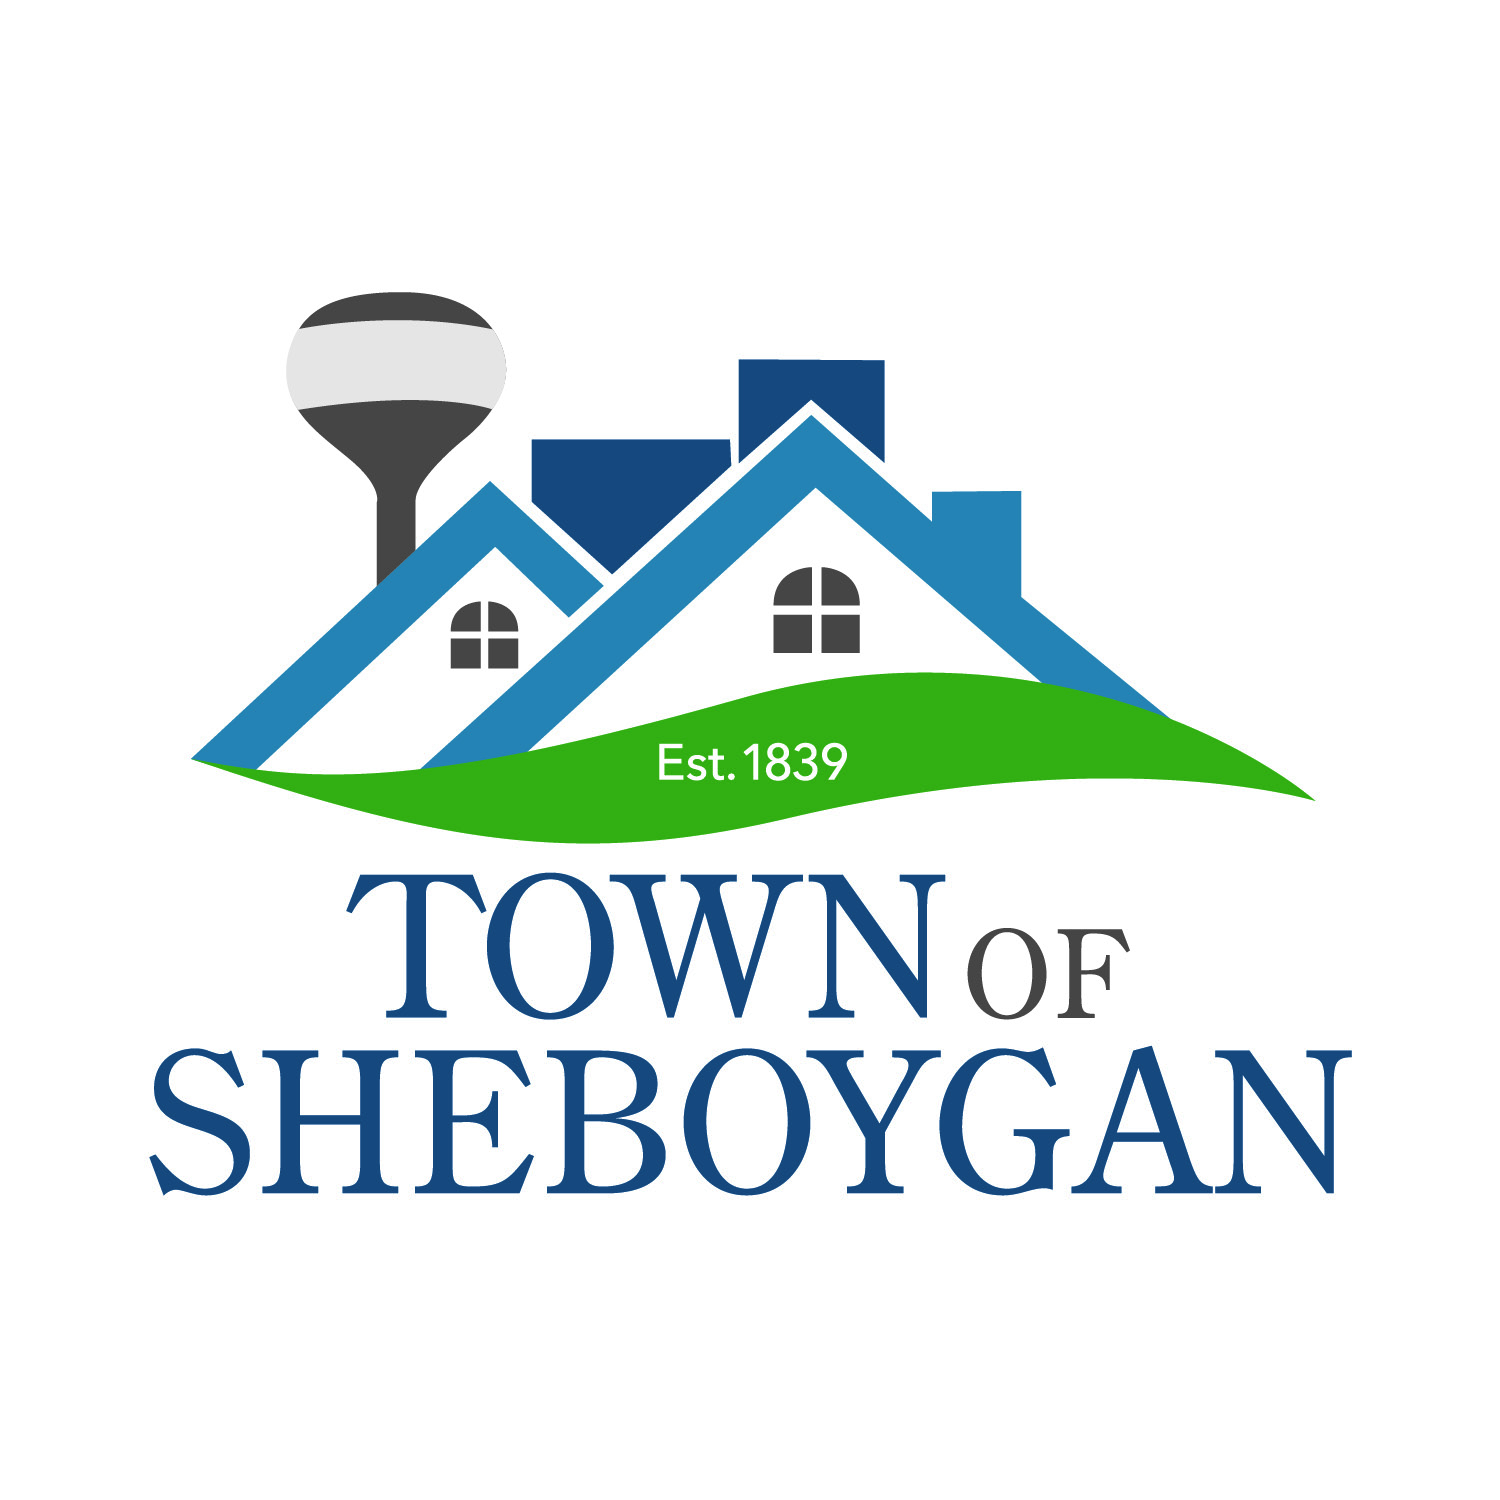 TownSheboygan New logo